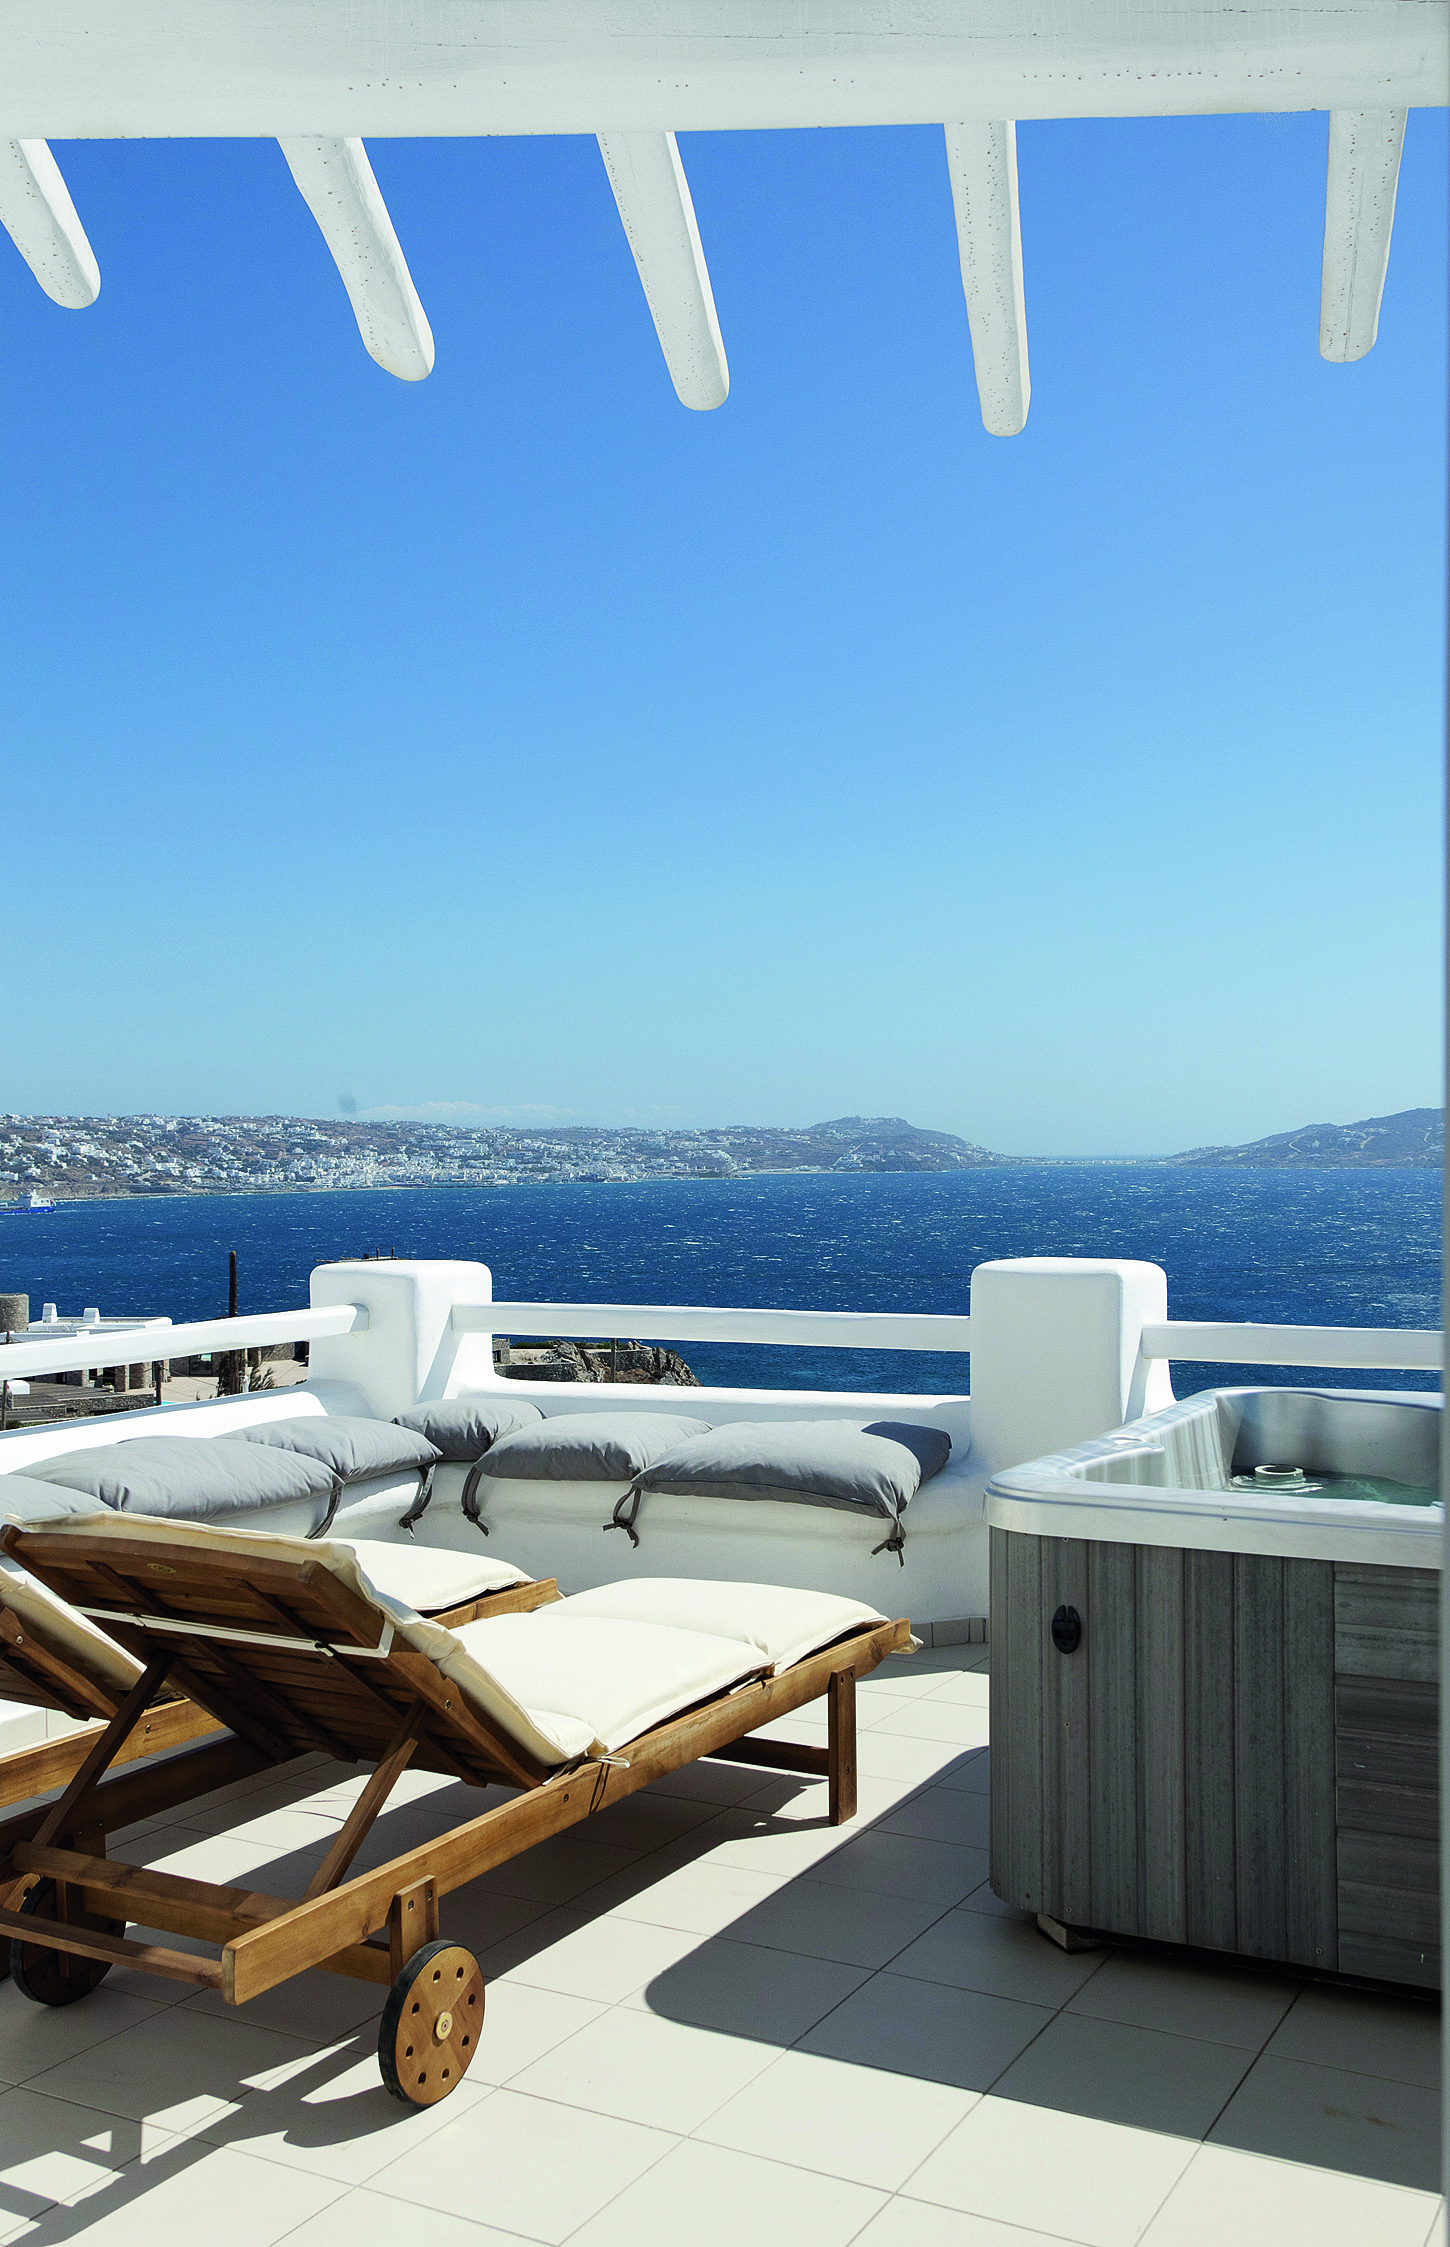 The Rocabella Hotel in Mykonos